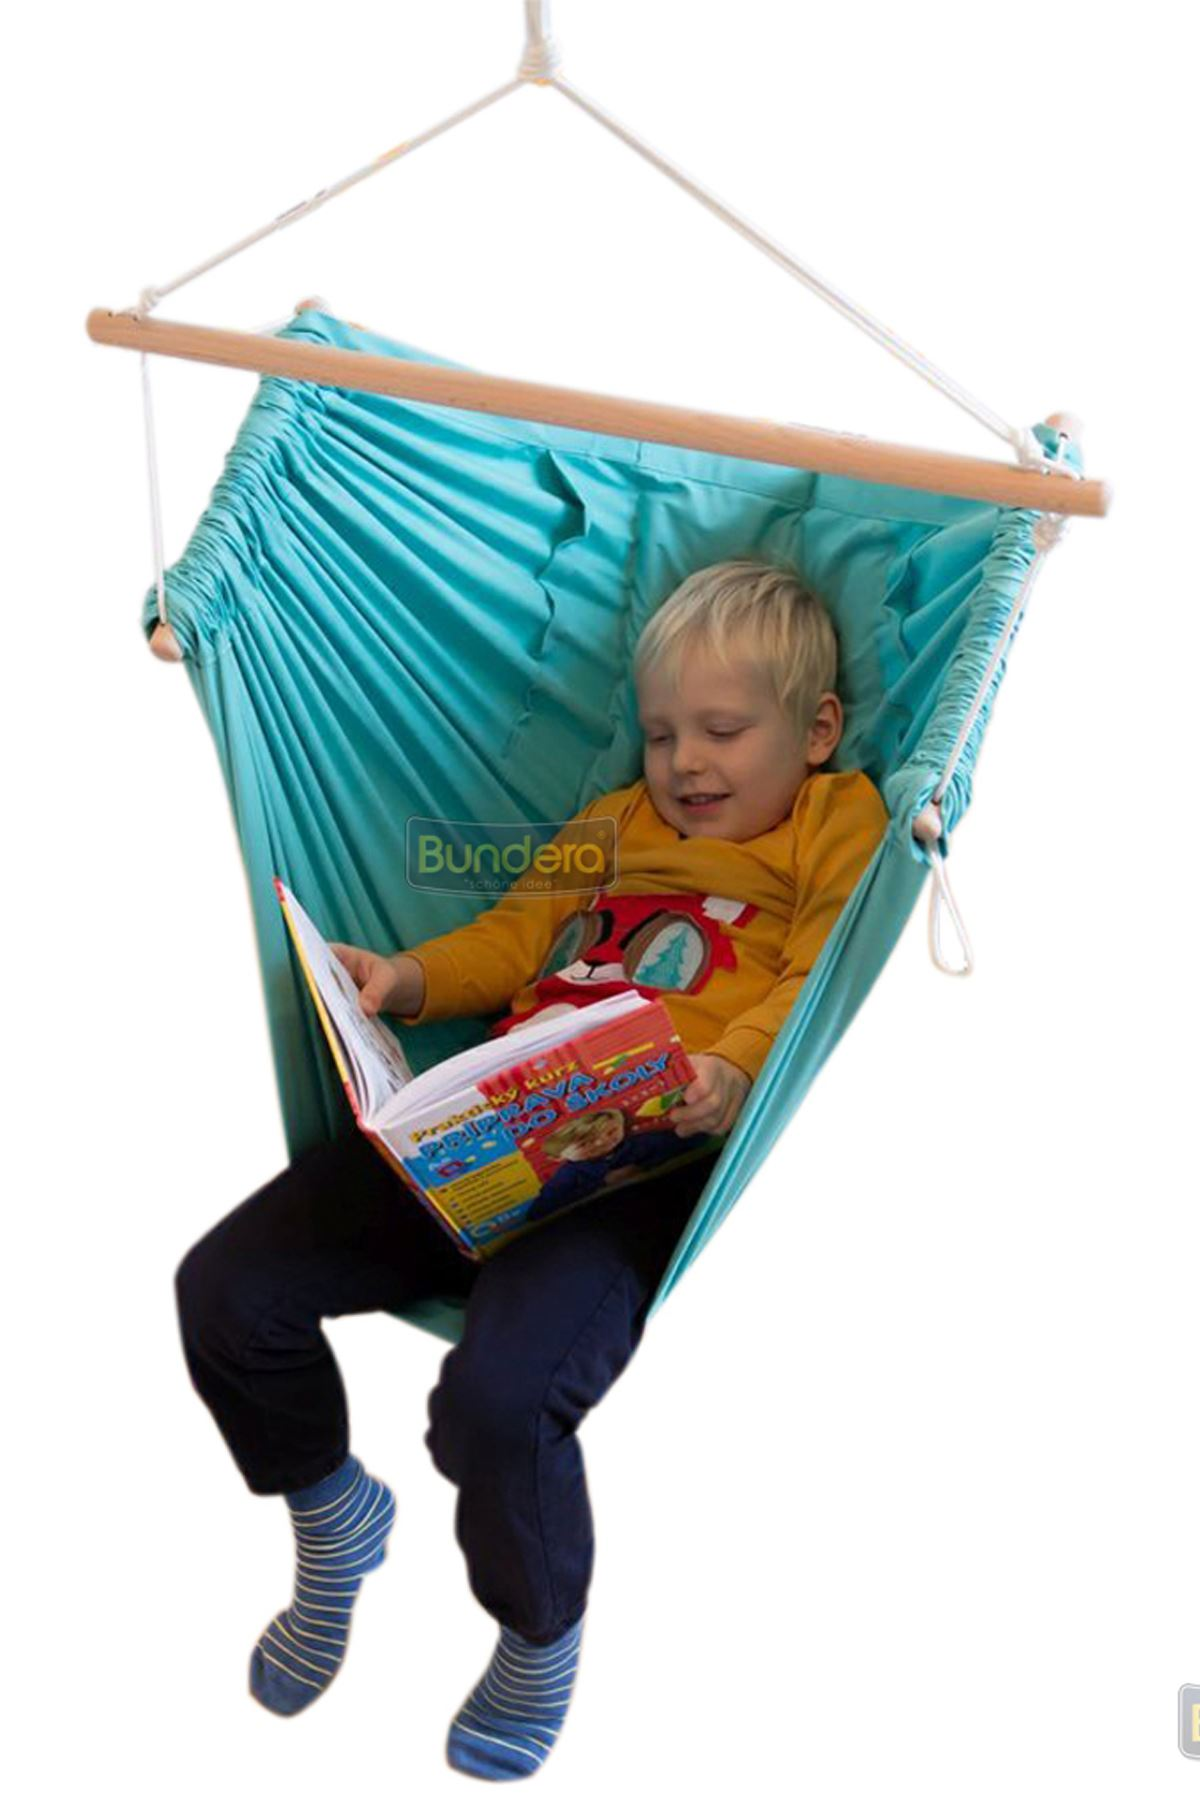 Girl Boy Child Teenager Wooden Baby Sleeping Crib Hammock Babies Toy Garden Camping Rope Swing Chair Fashion Home Fun Activity